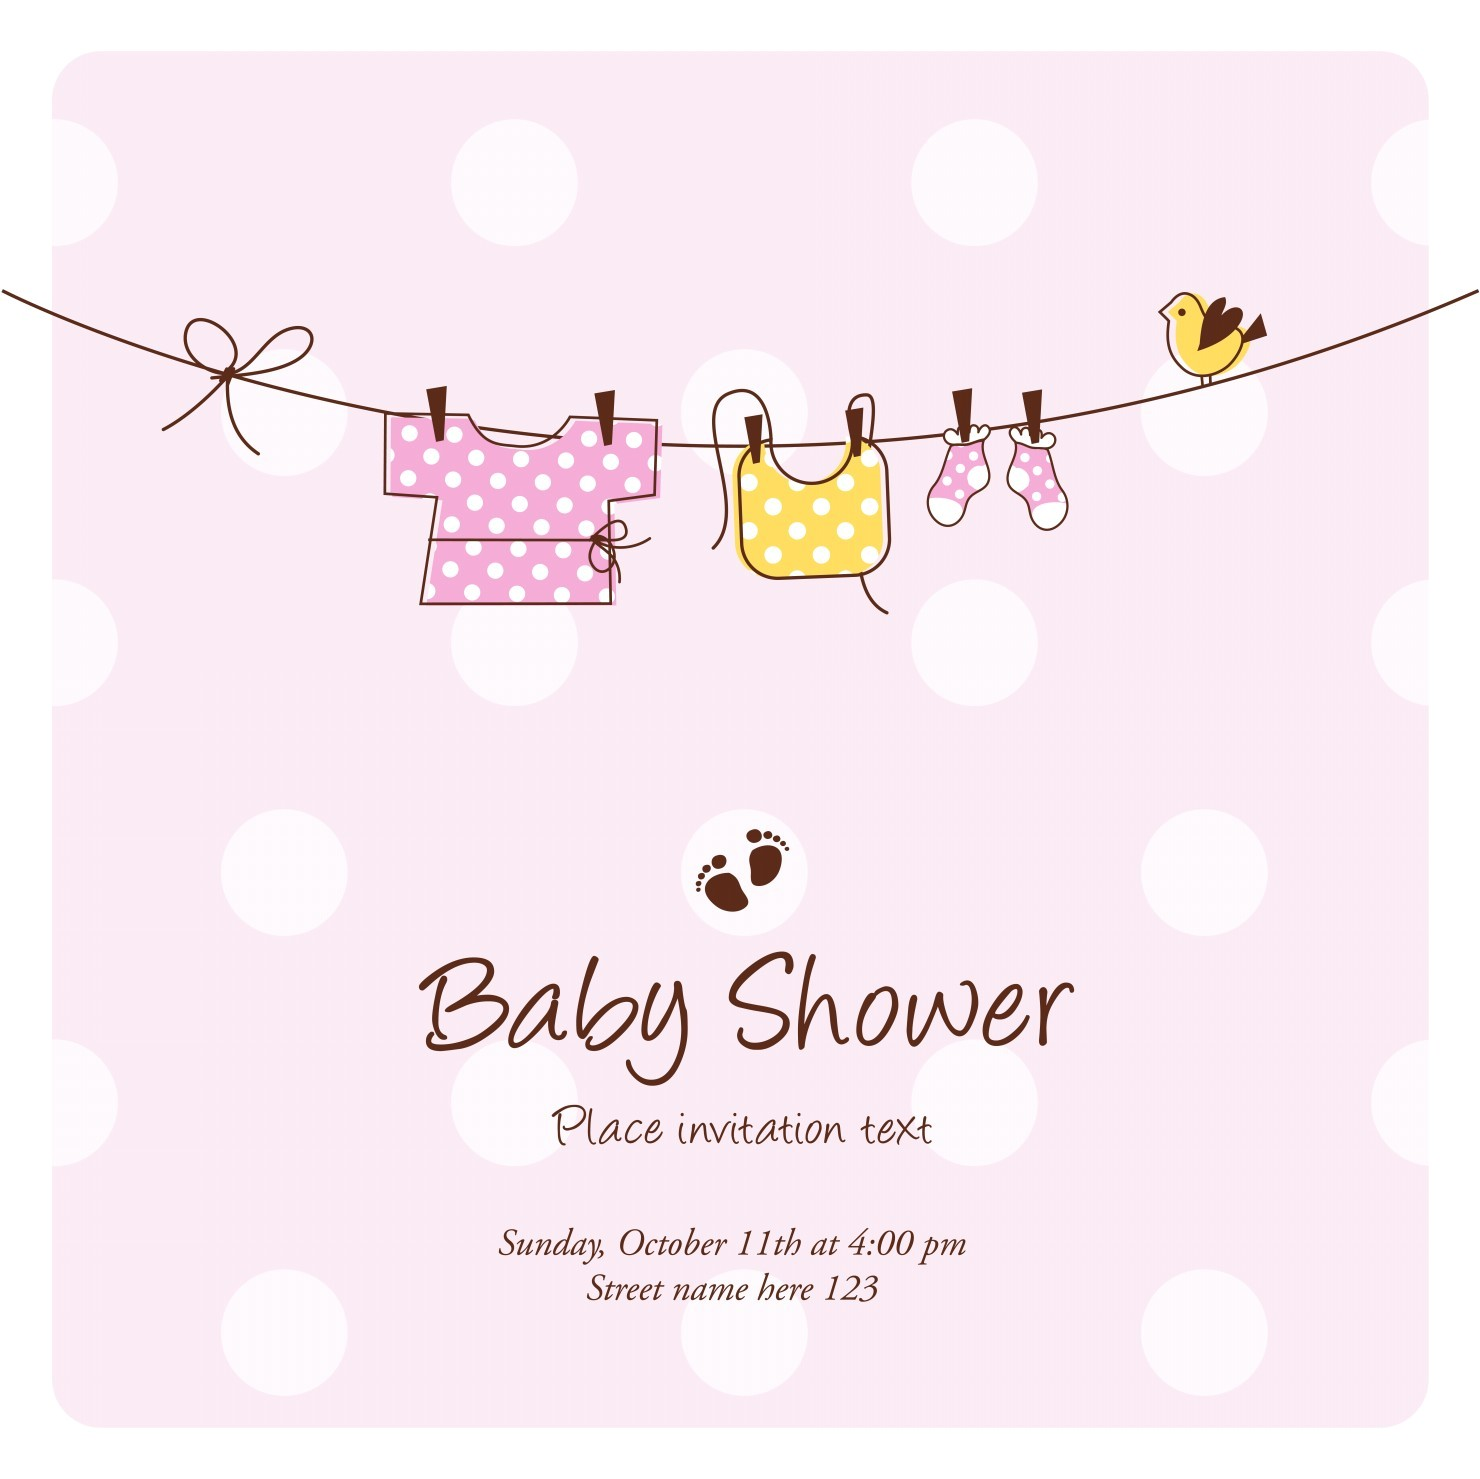 Baby Shower Ecards Free Invitations Template Invitation Cards for Baby Shower